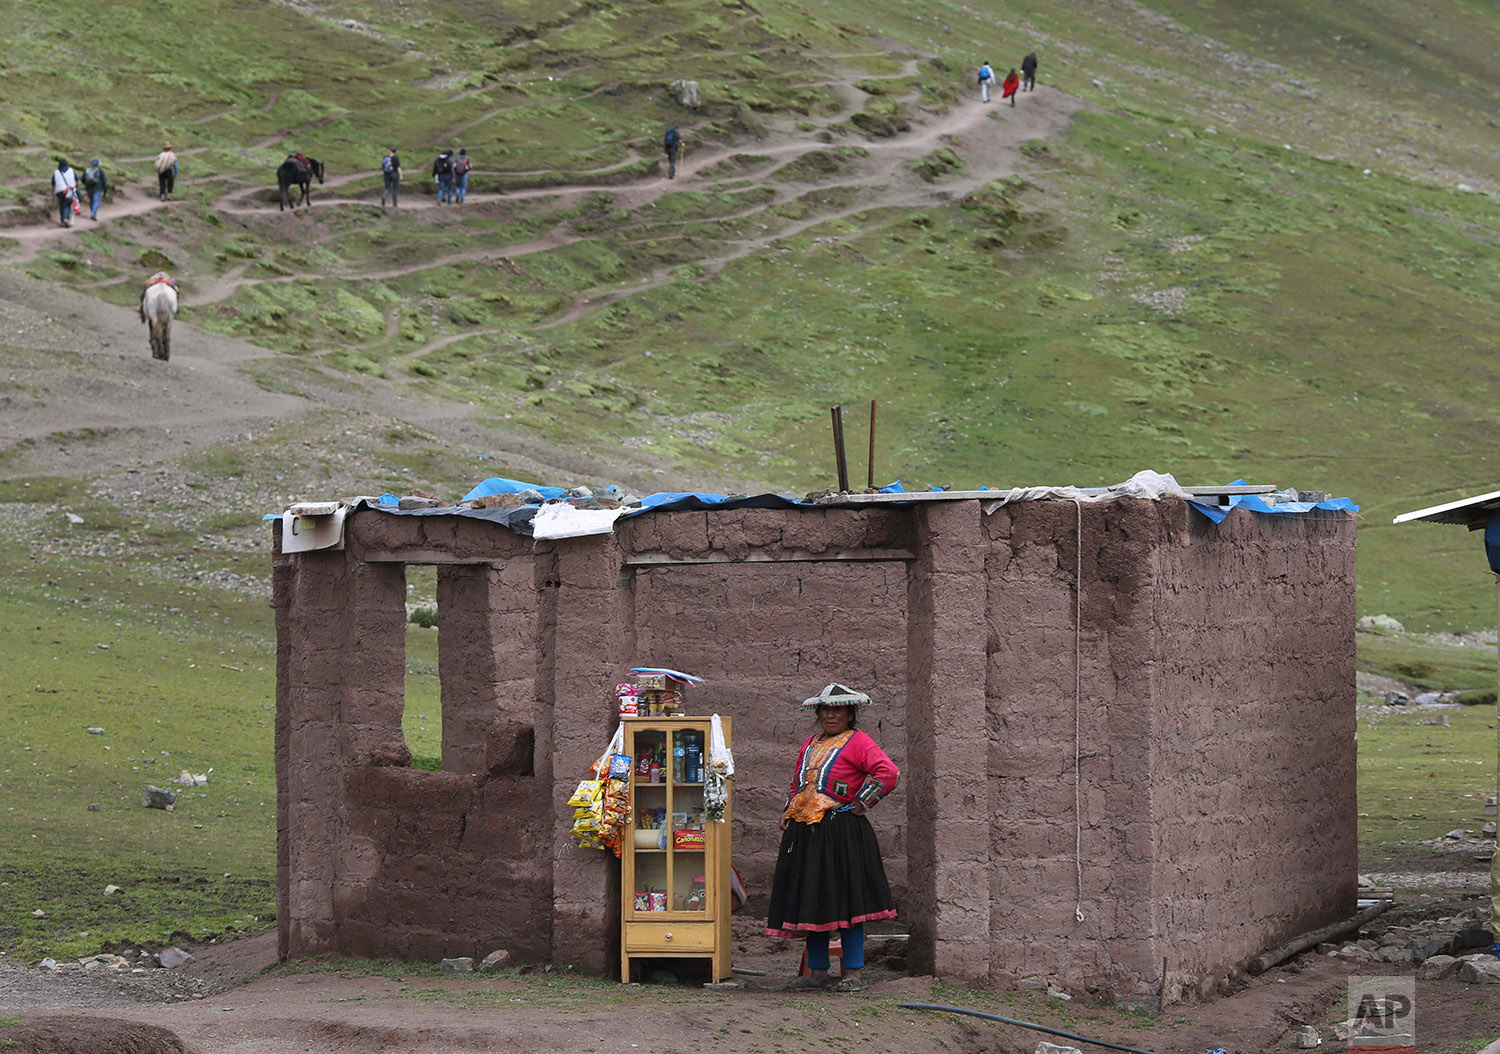 In this March 2, 2018 photo, an Andean woman sells candies, water and chips, on the route to Rainbow Mountain, in Pitumarca, Peru. (AP Photo/Martin Mejia)